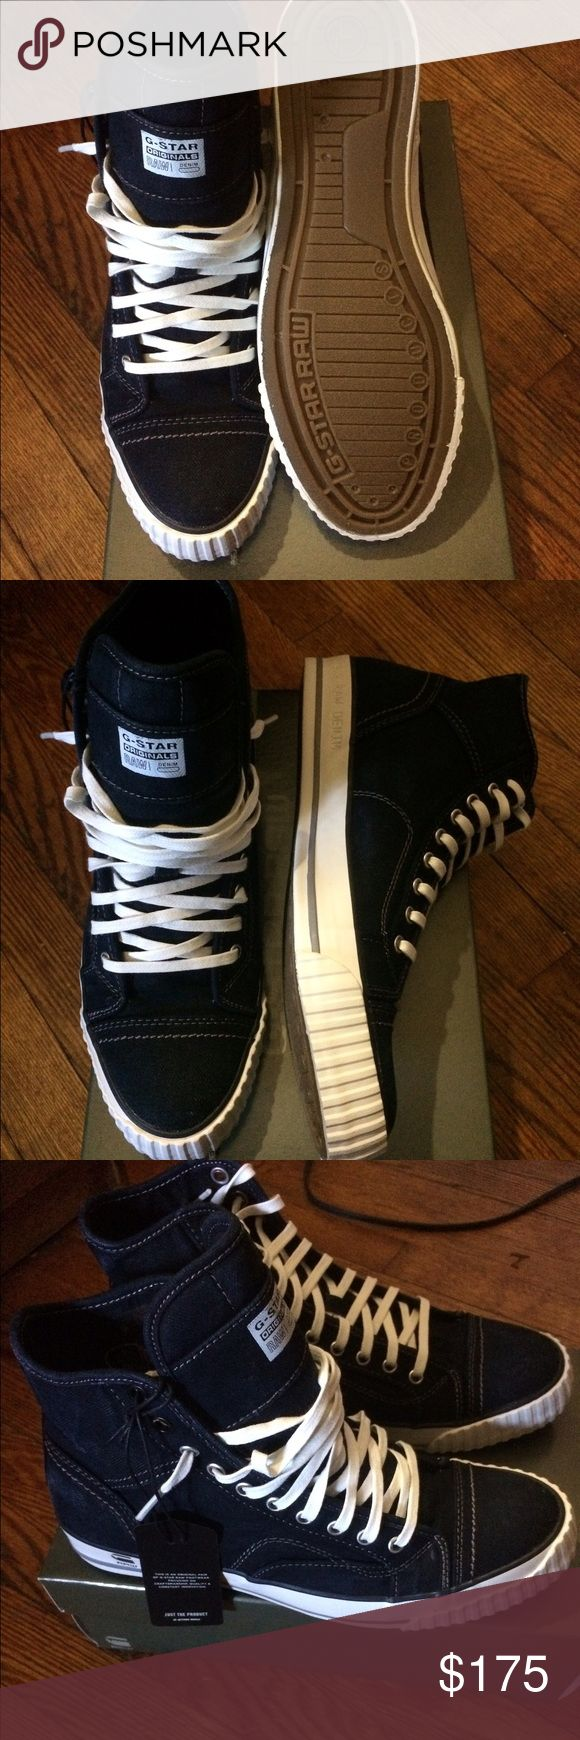 G STAR RAW HIGH TOP SNEAKERS DENIM G STAR RAW SNEAKERS!!! NEVER WORN!!! NEW WITH TAGS IN BOX!!!! SIZE 9 G-Star Shoes Sneakers